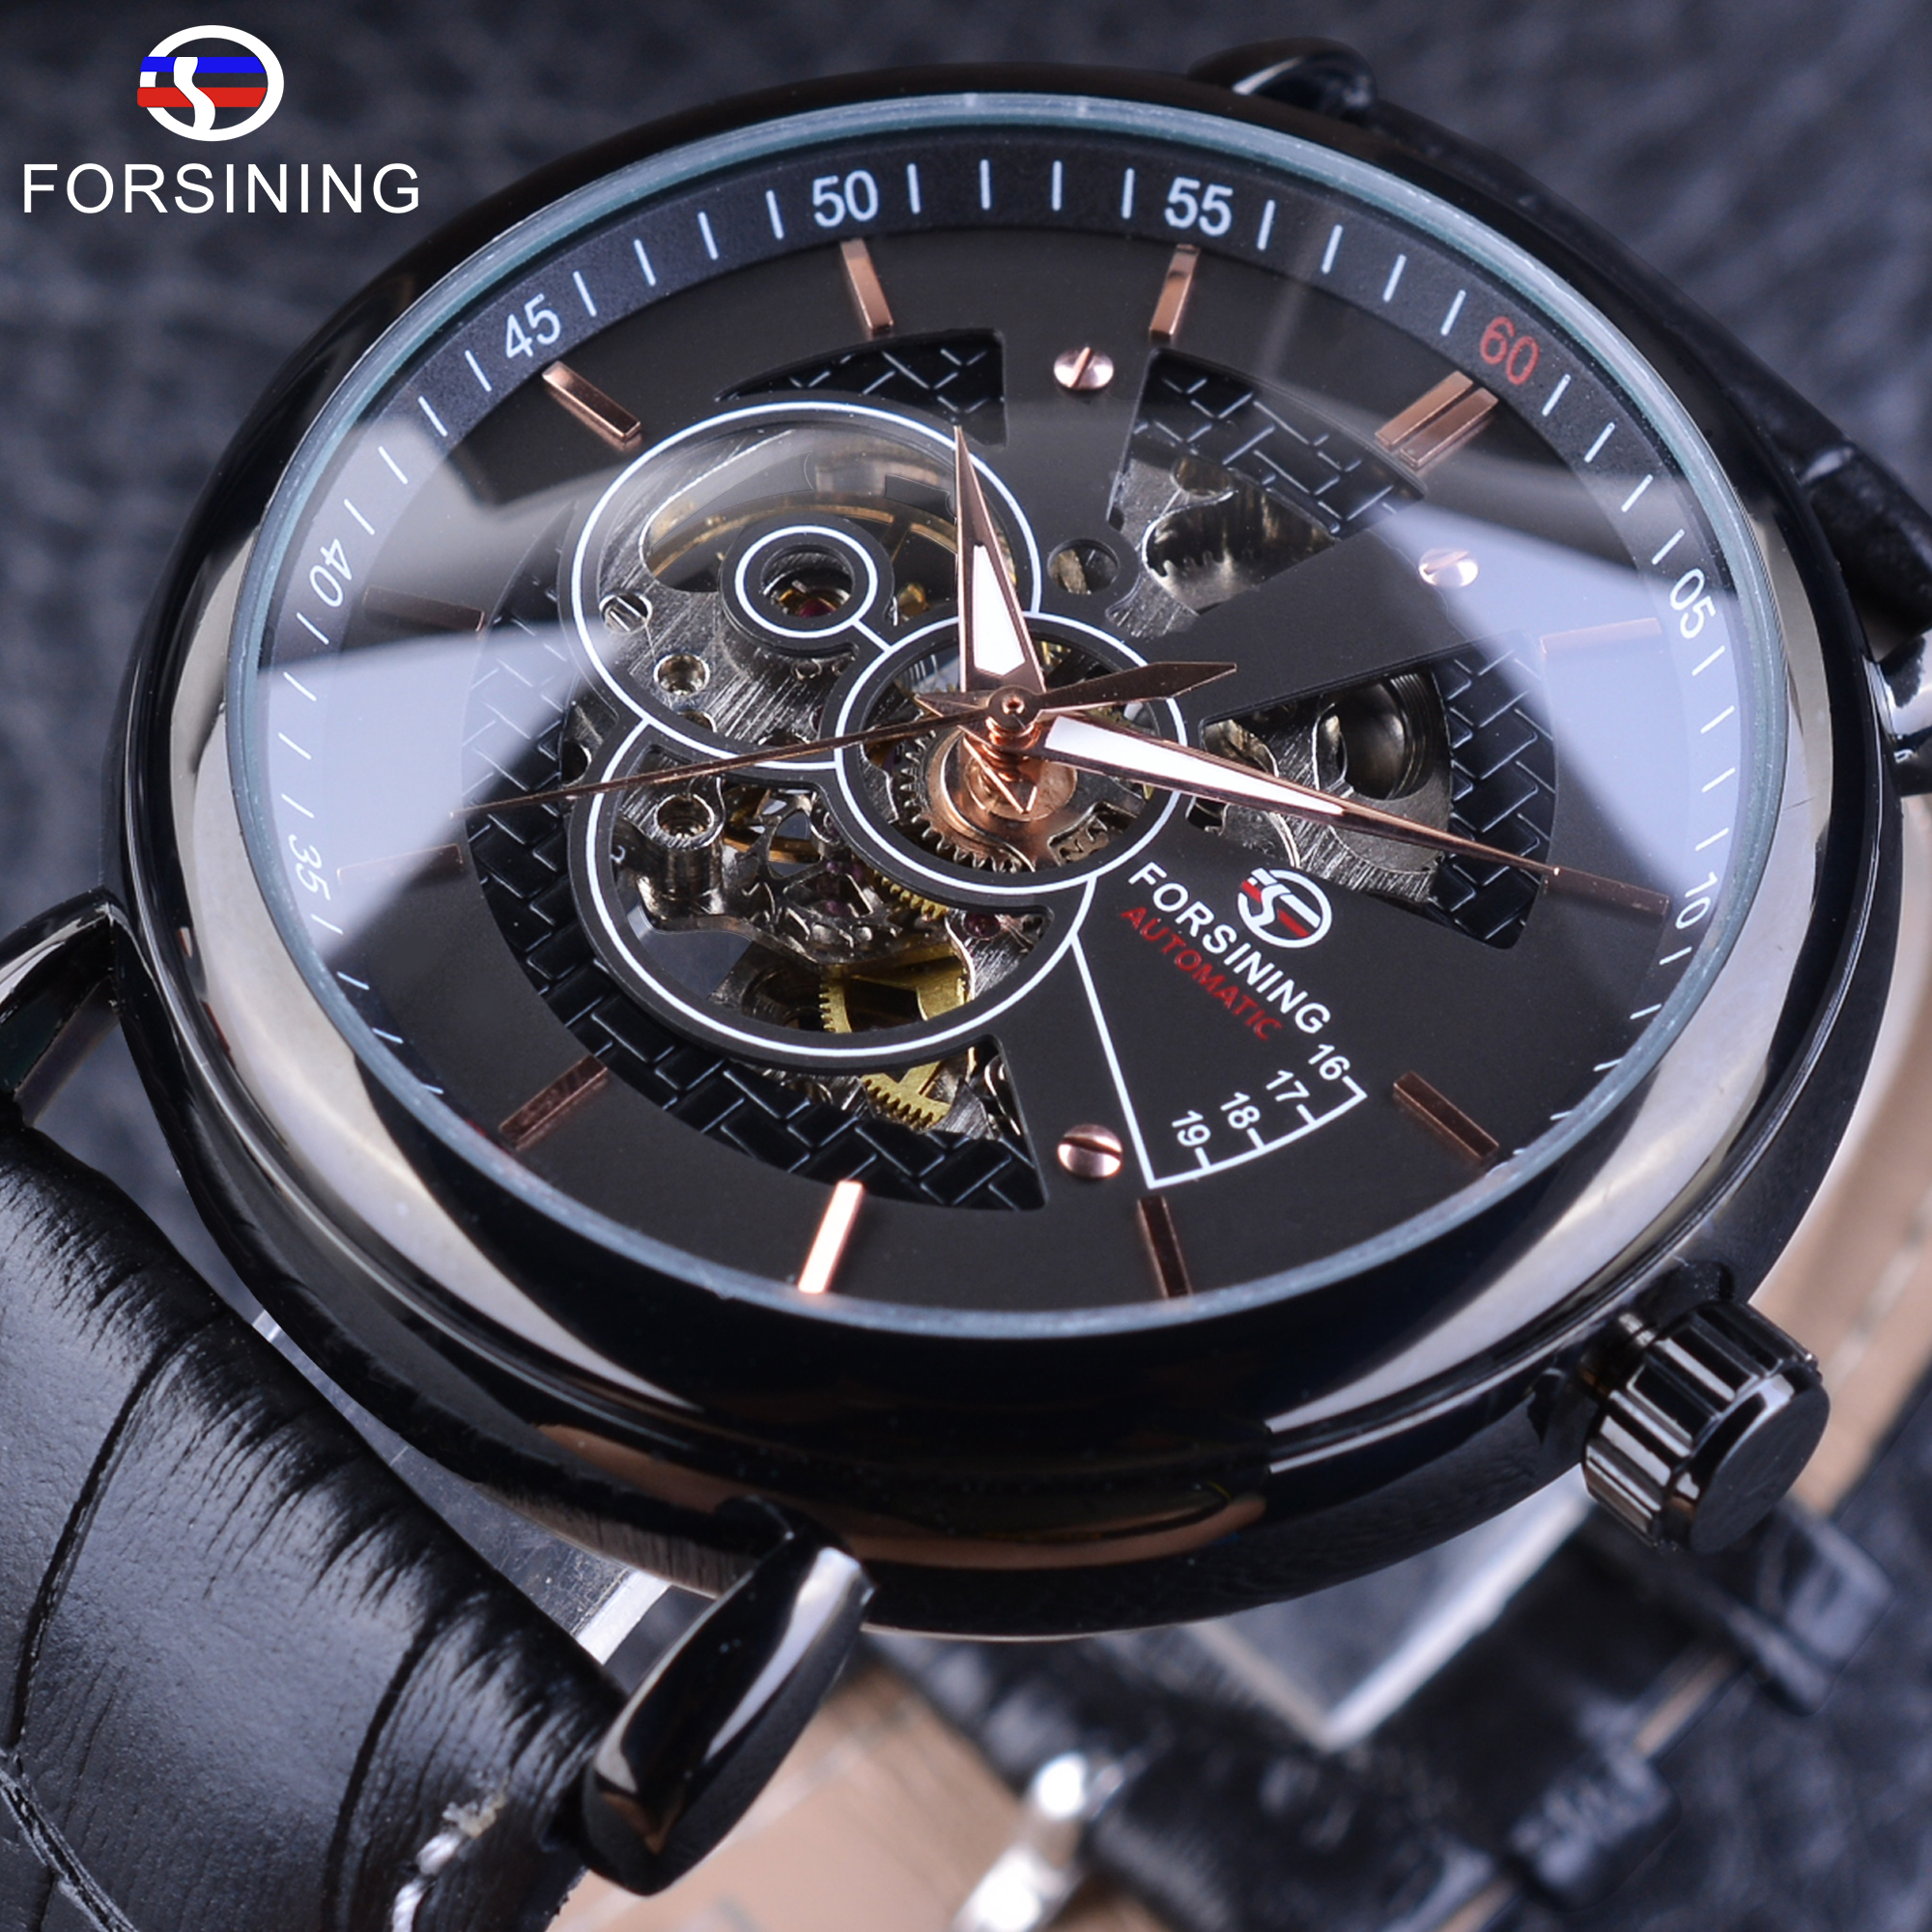 Forsining 2017 Transparent Case Self Winding Skeleton Luxury Design Mens Watch Top Brand Luxury Automatic Black Military Watches forsining 3d skeleton twisting design golden movement inside transparent case mens watches top brand luxury automatic watches